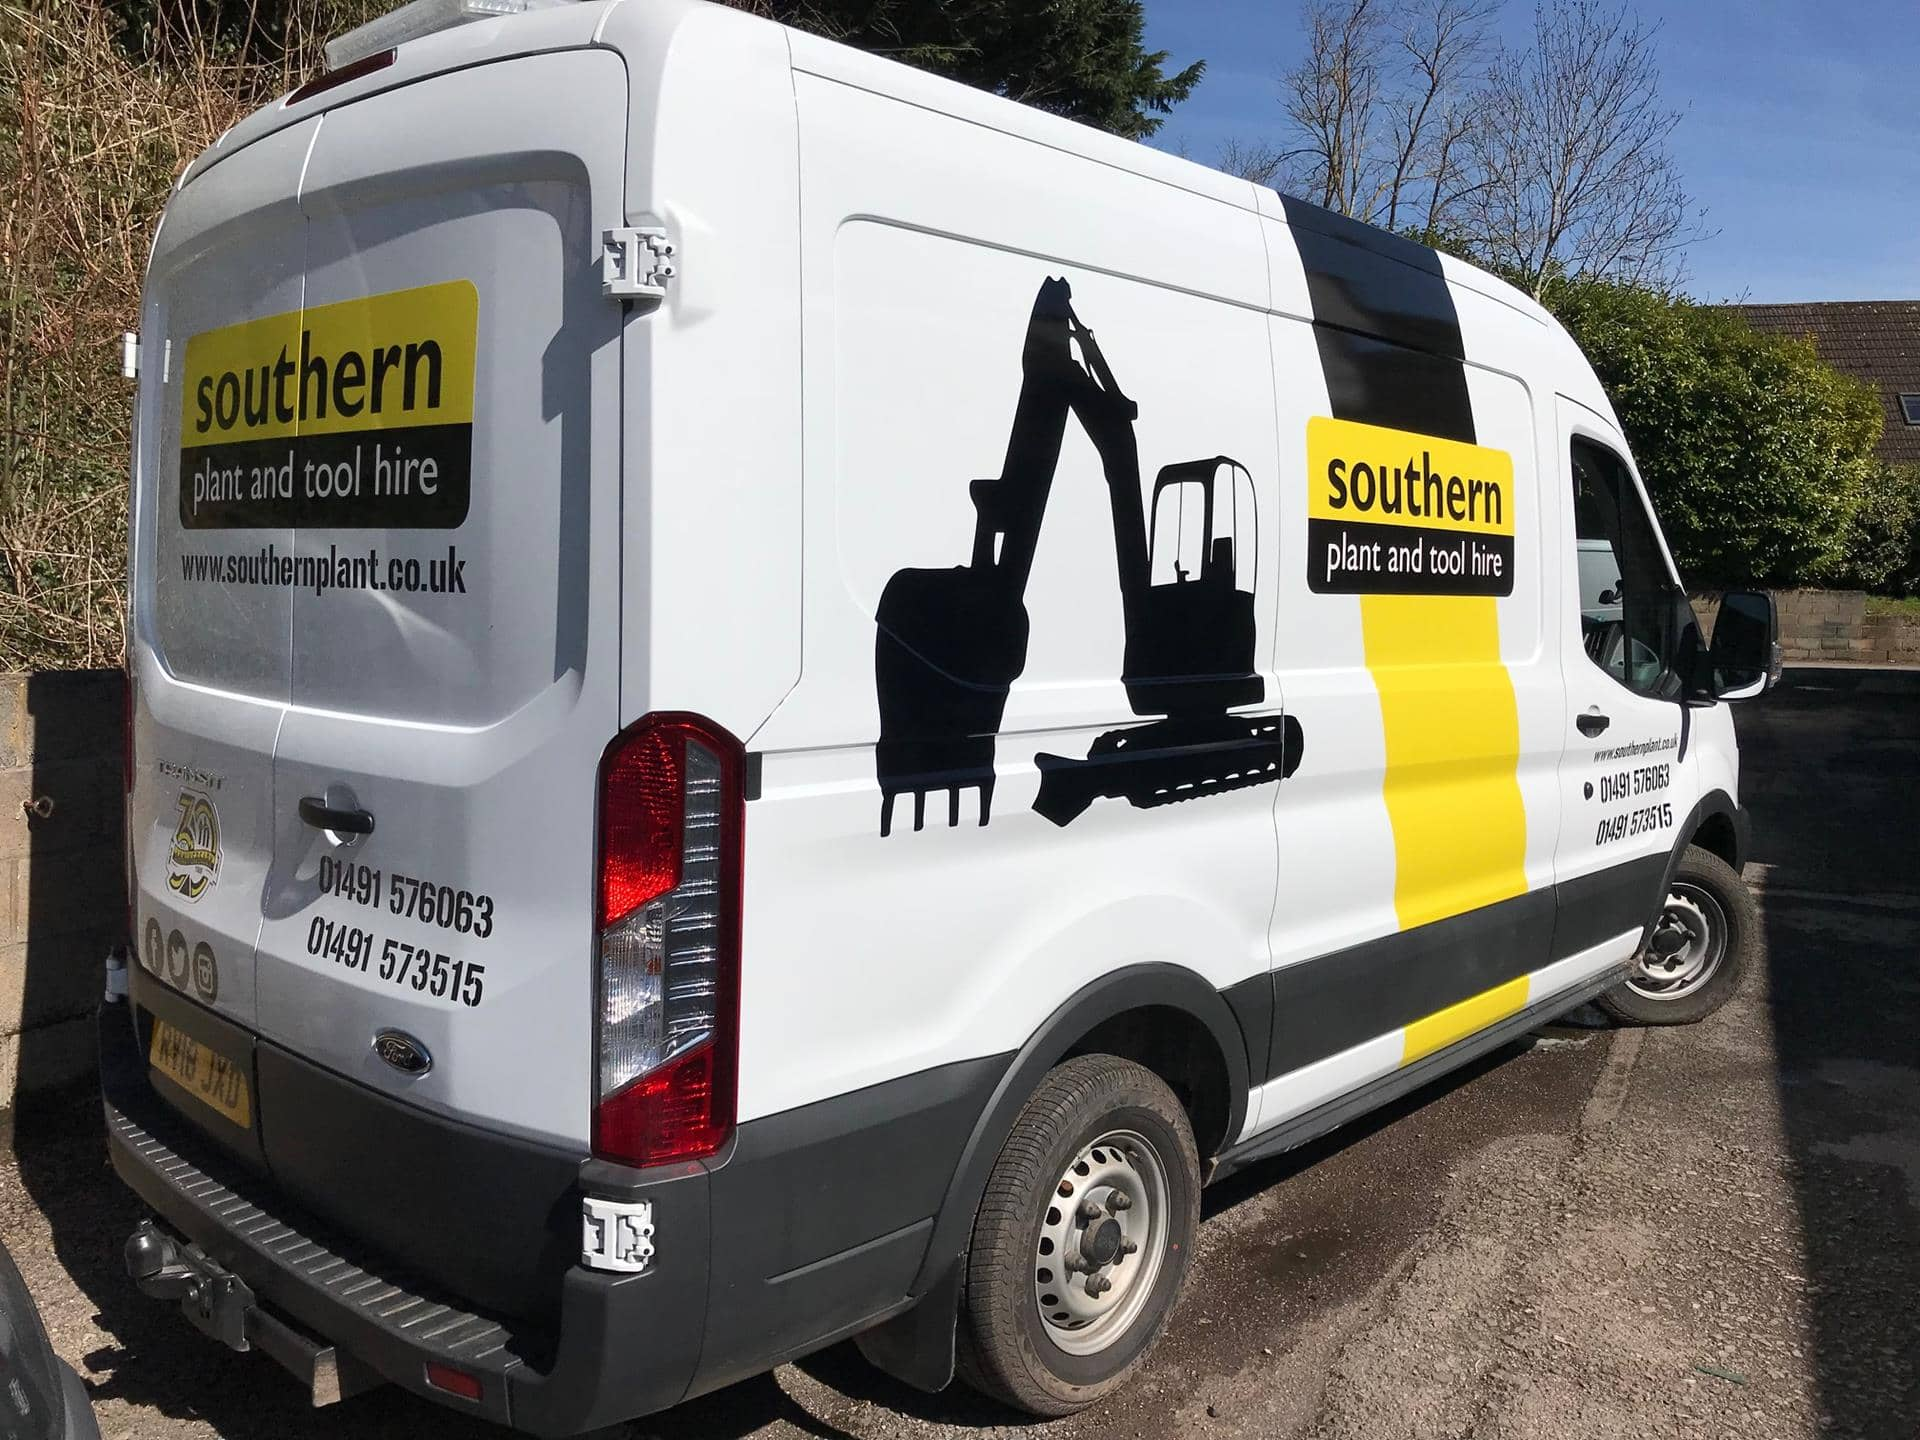 Full Colour Vehicle Wrap For Southern Plant